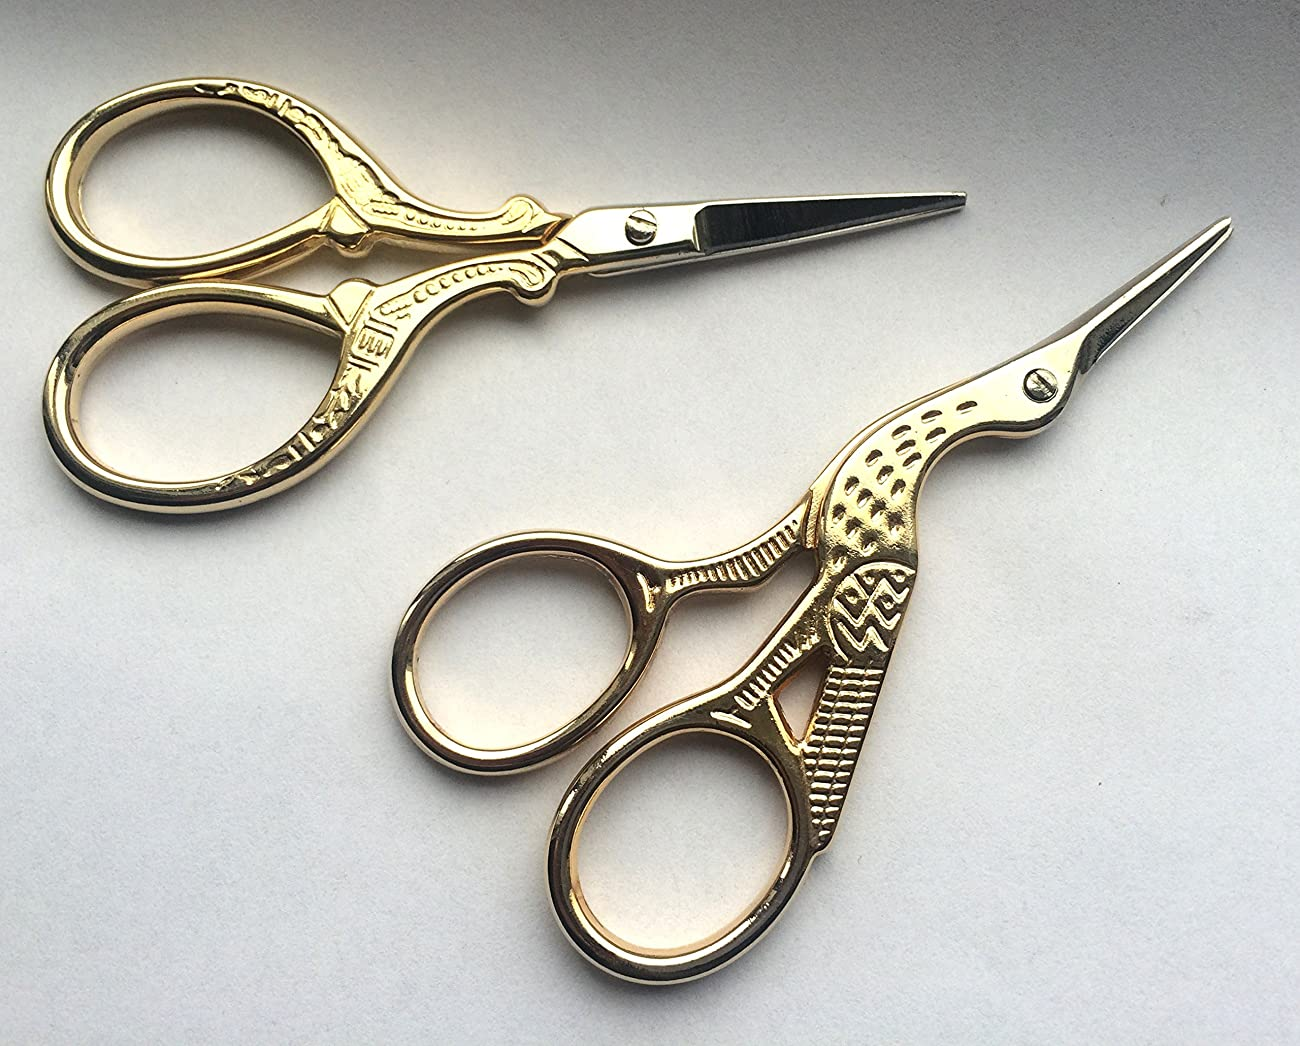 TWO High Quality 3.5 Inch Gold Plated Stainless Steel Scissors for Embroidery, Sewing, Craft, Art Work & Everyday Use - Ideal as a Gift 2